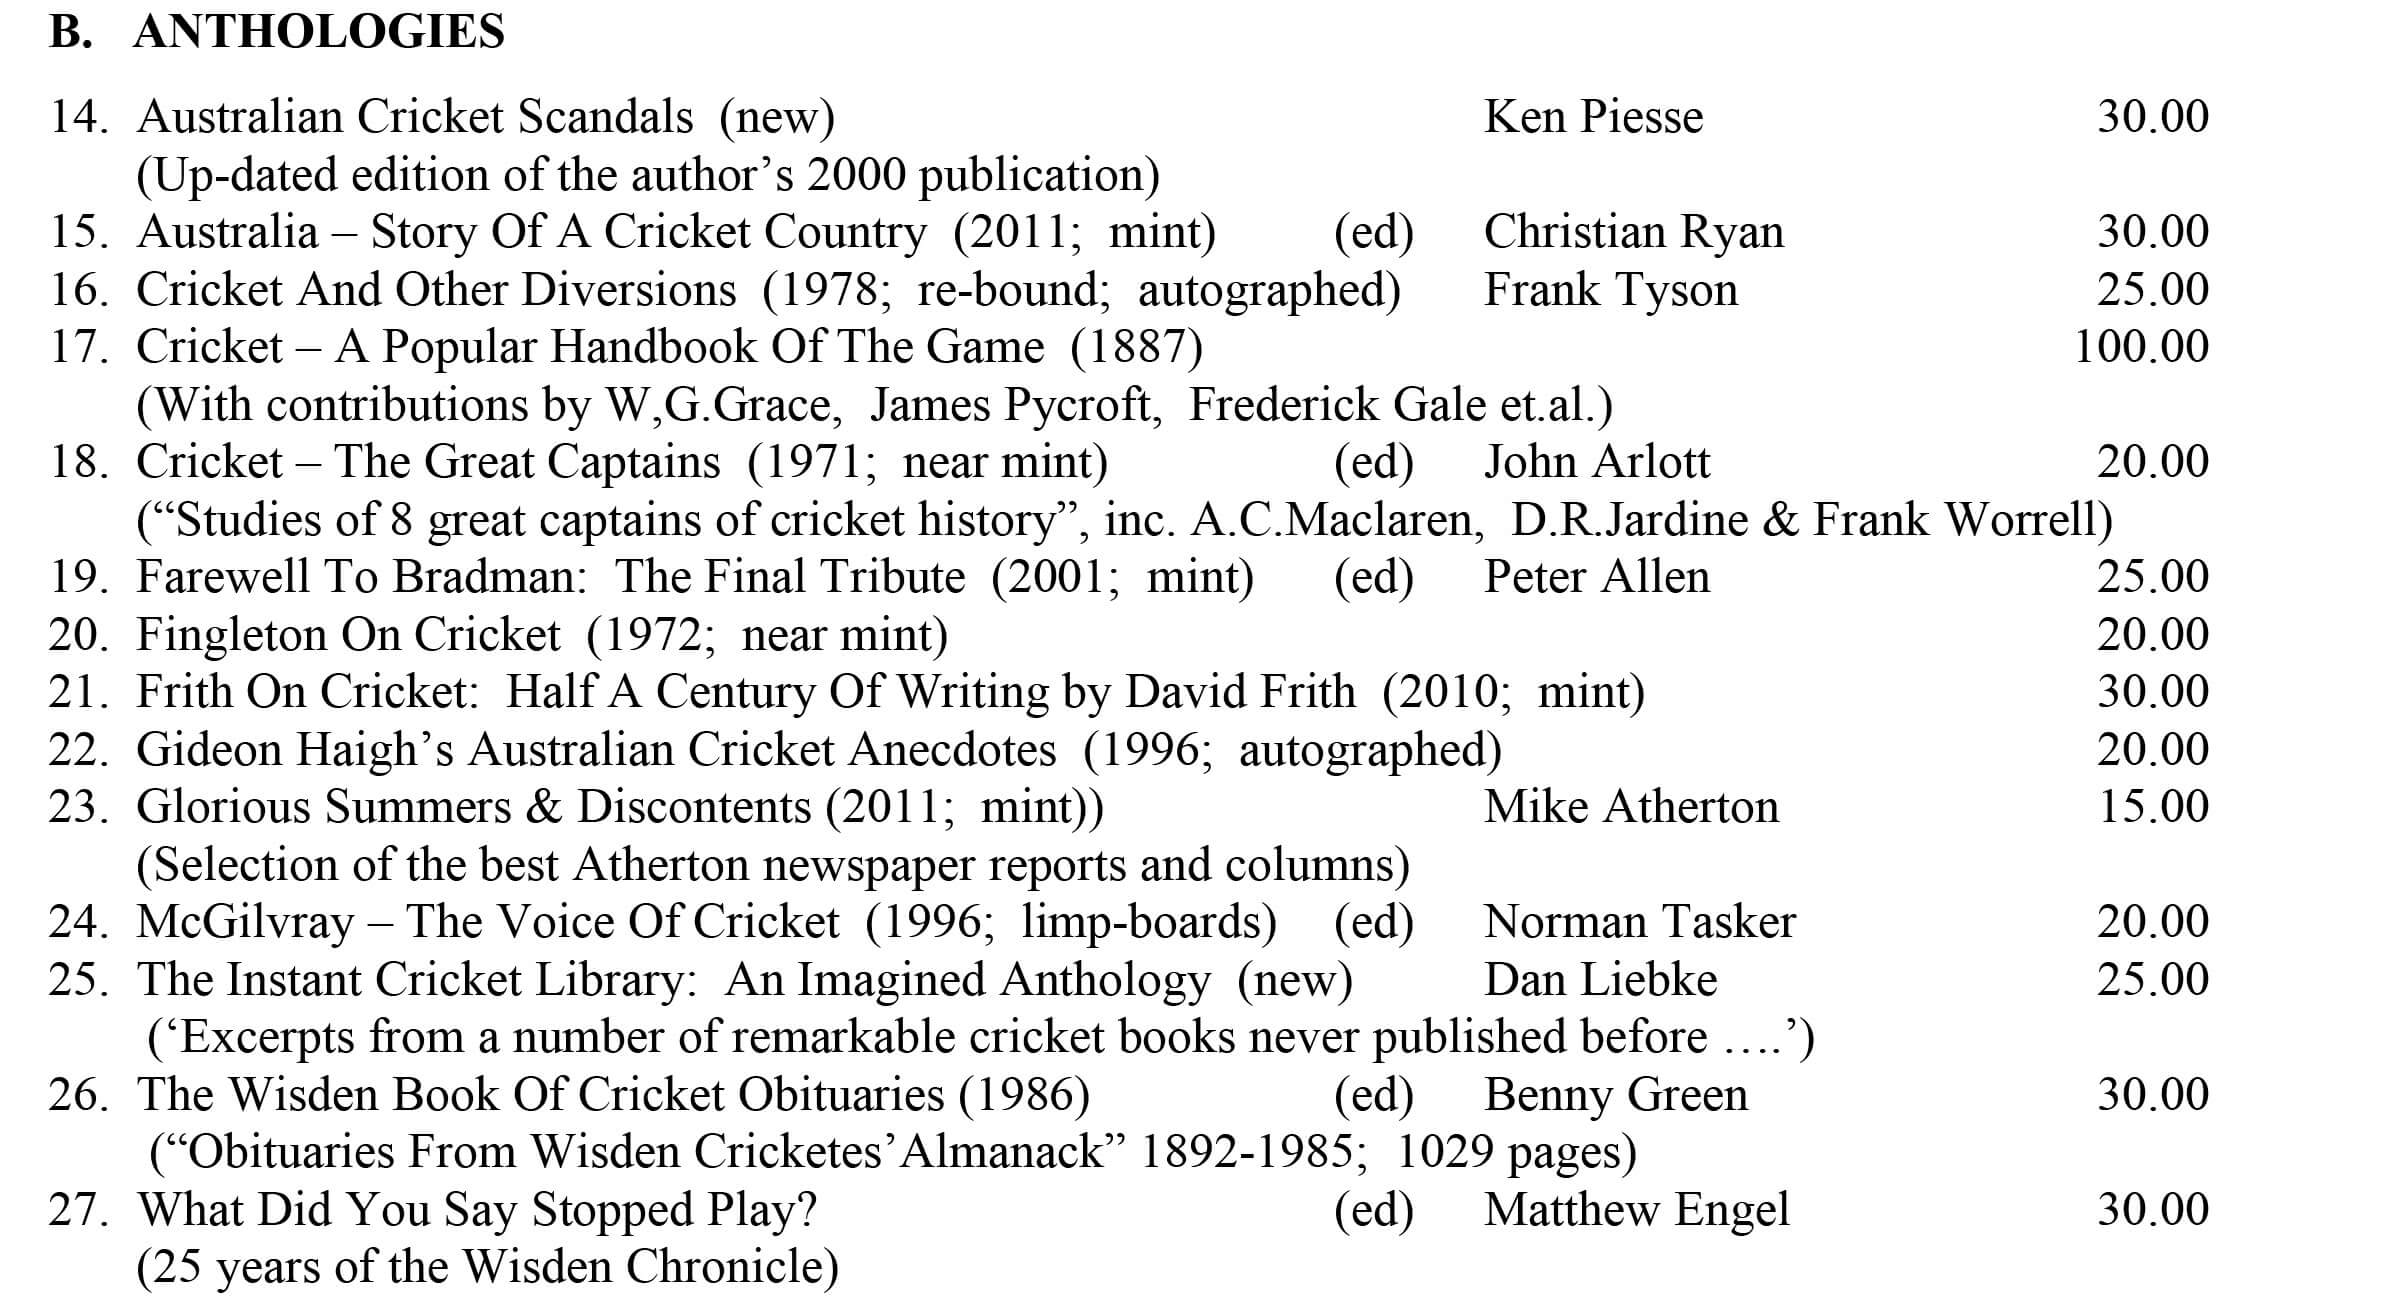 Cricket Anthologies December 2018 Roger Page Cricket Books December 2018  Roger Page Cricket Books December 2018